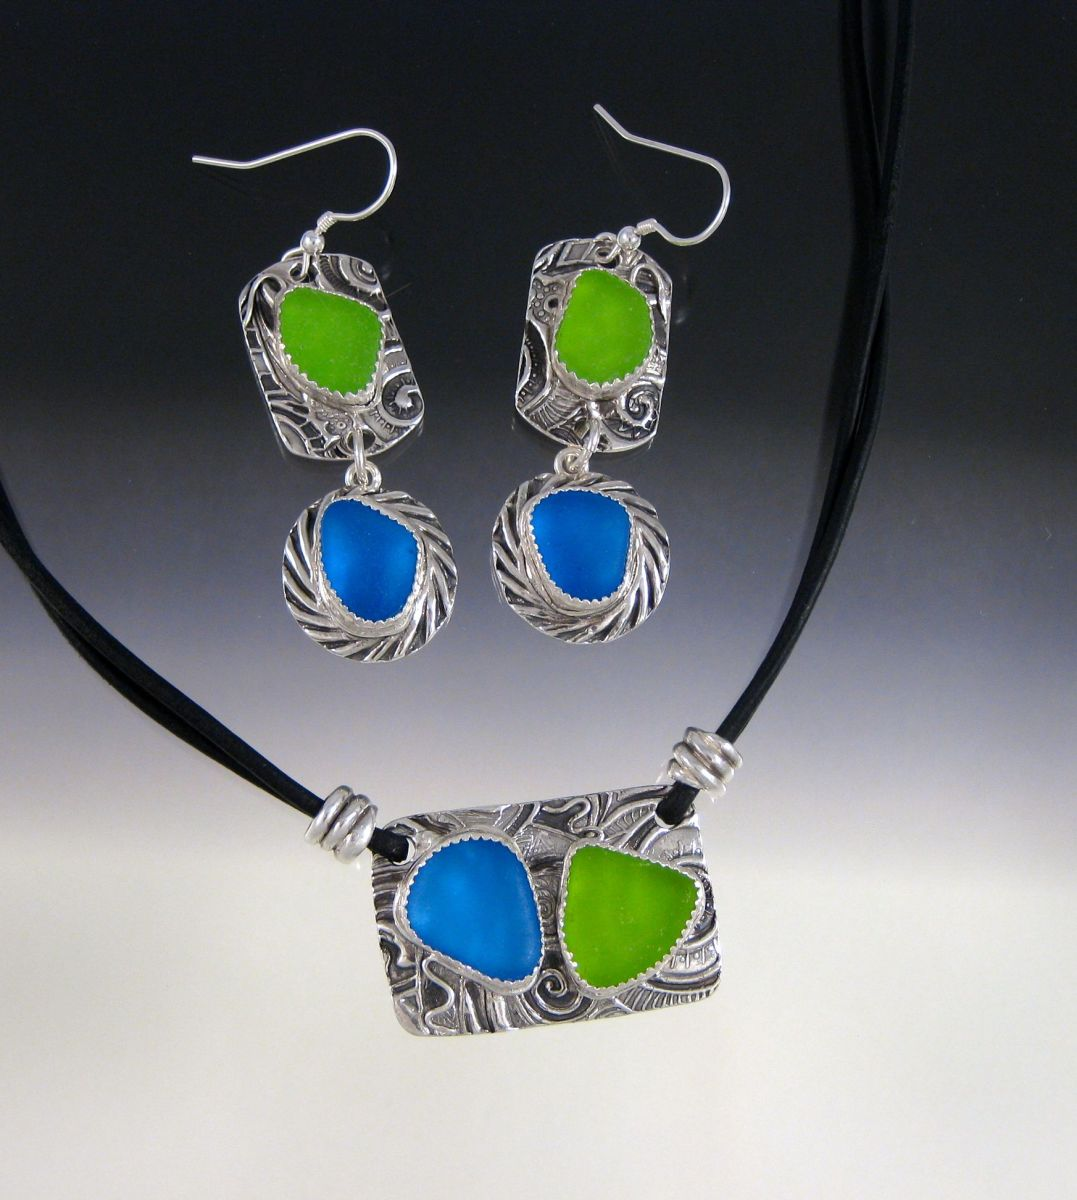 Leather Necklace/Earring Set for Hanlie (large view)